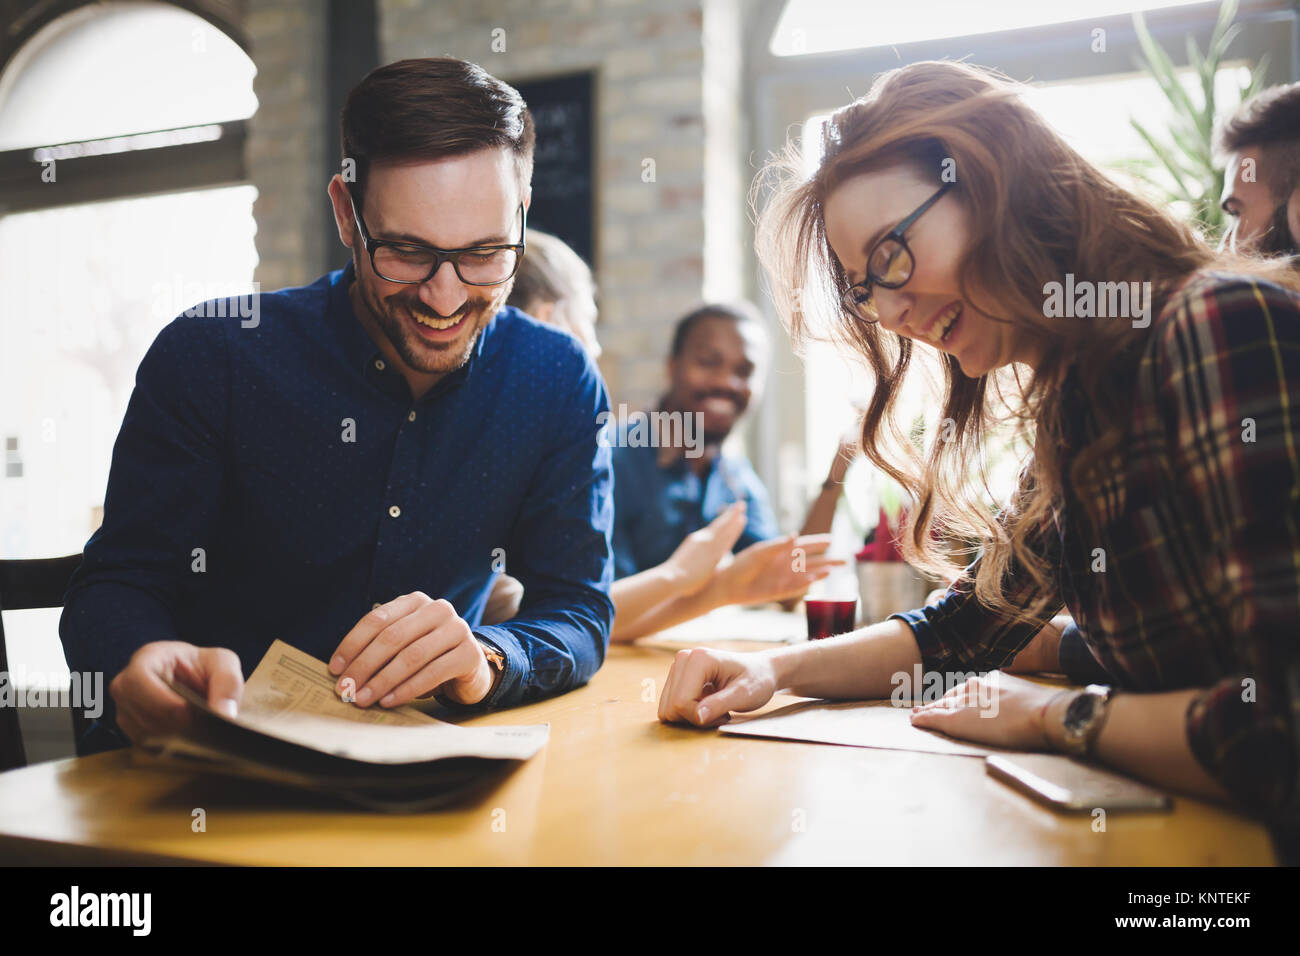 Flirting coworkers eating out and dating in restaurant - Stock Image